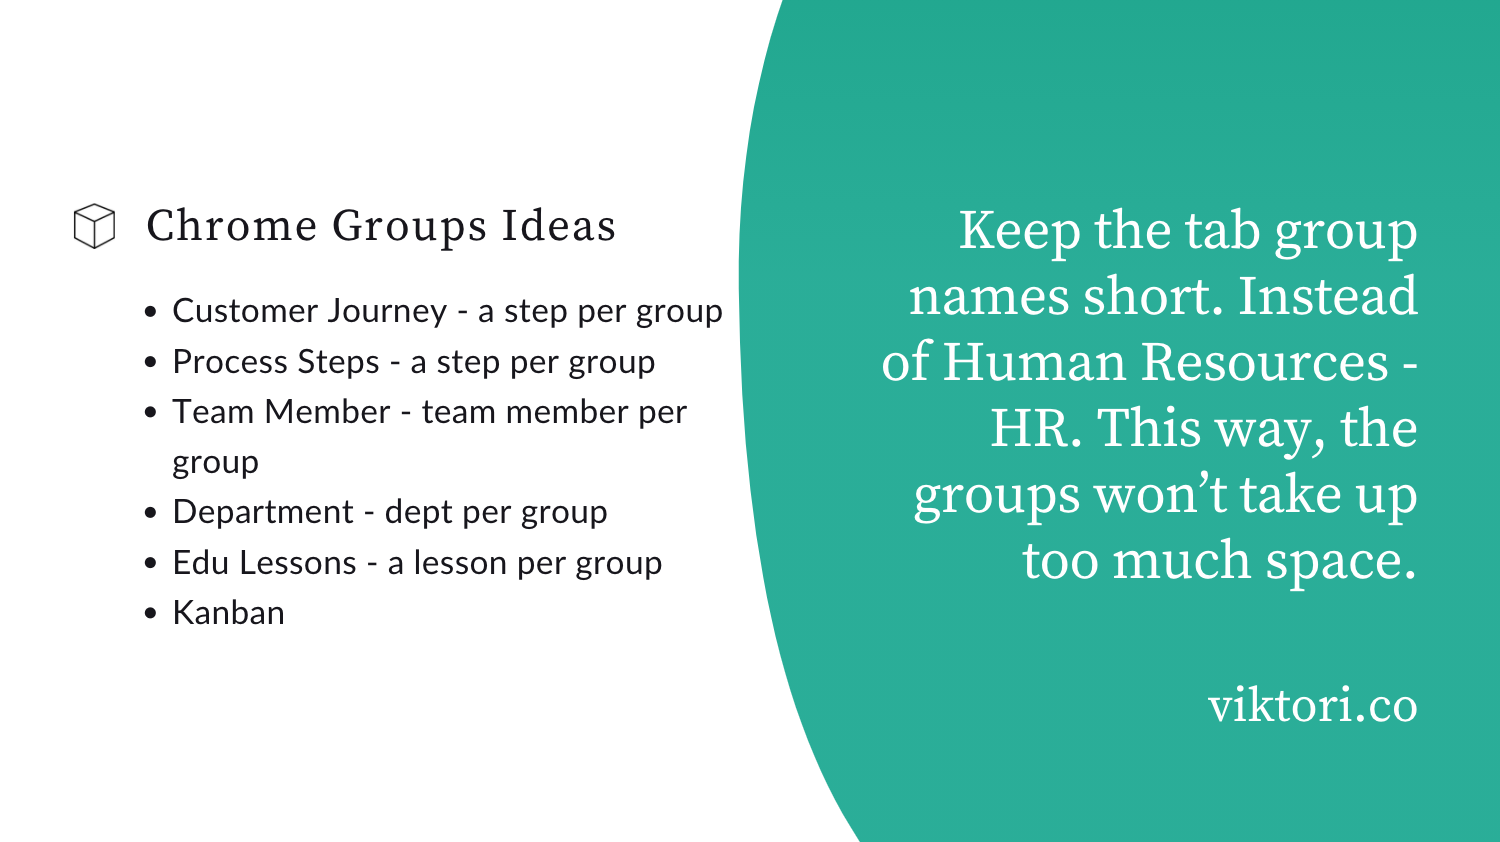 google chrome tab groups examples and ideas